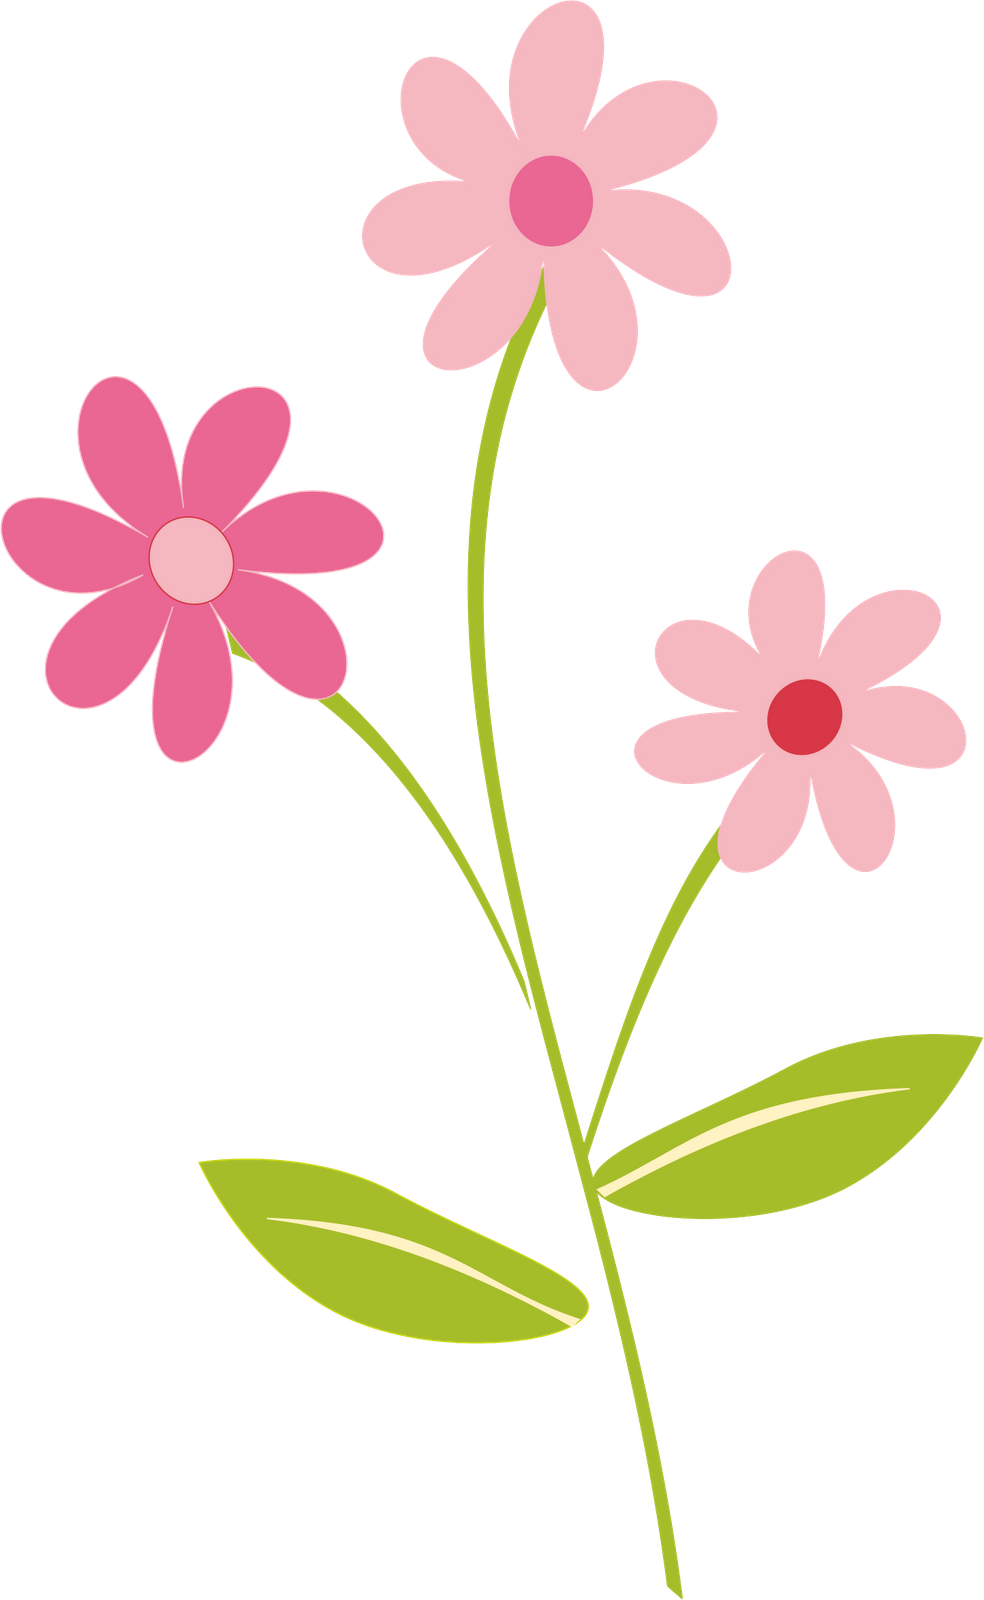 Clipart dtgtdg image library stock Free collection of Flowers clipart png. Download transparent clip ... image library stock